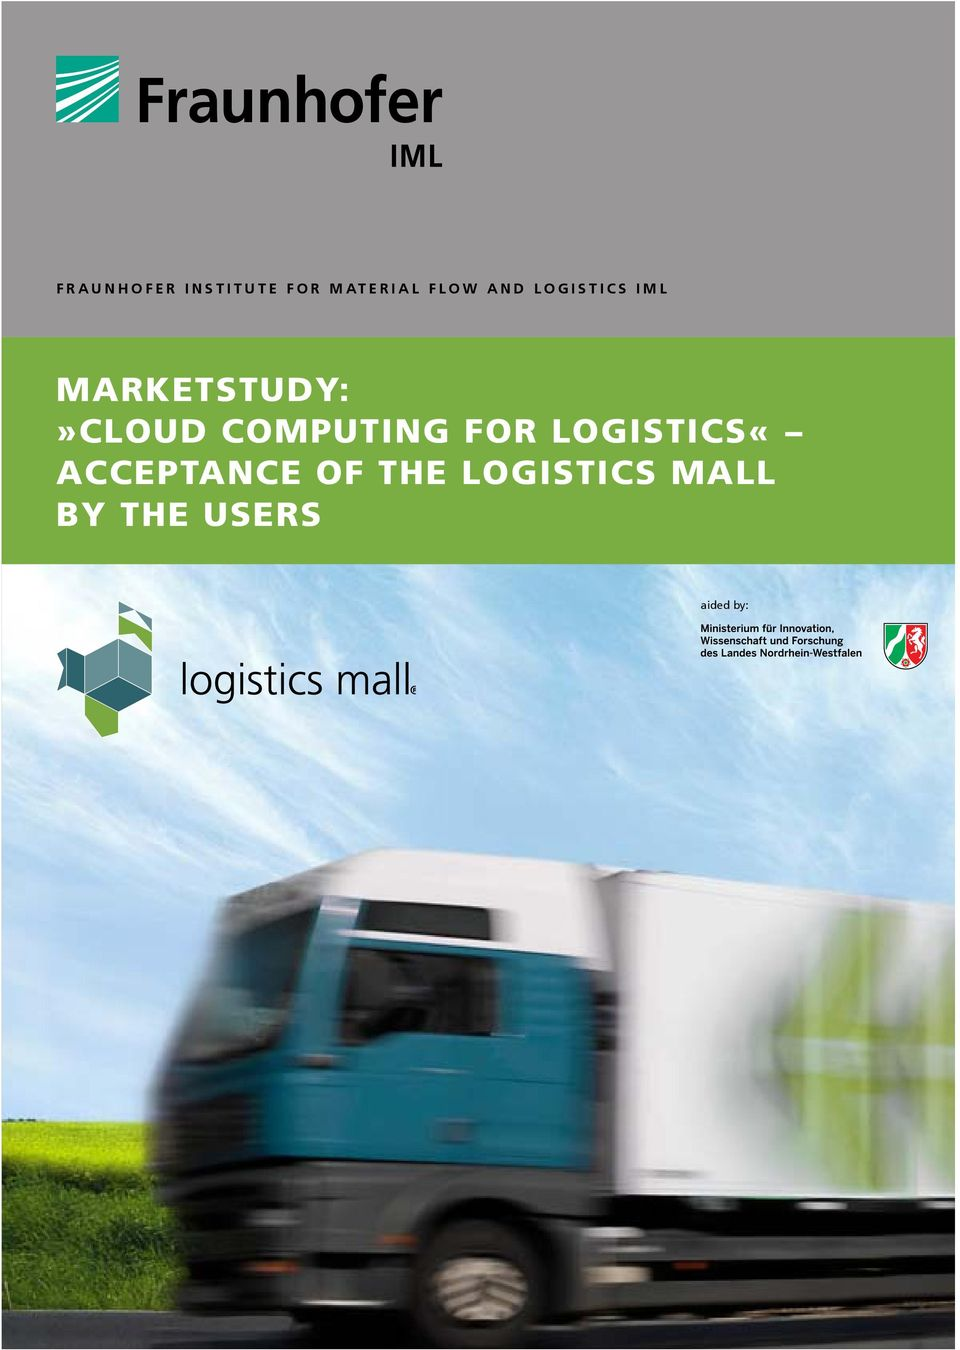 Computing for LogistiCS«ACCEPTANCE OF